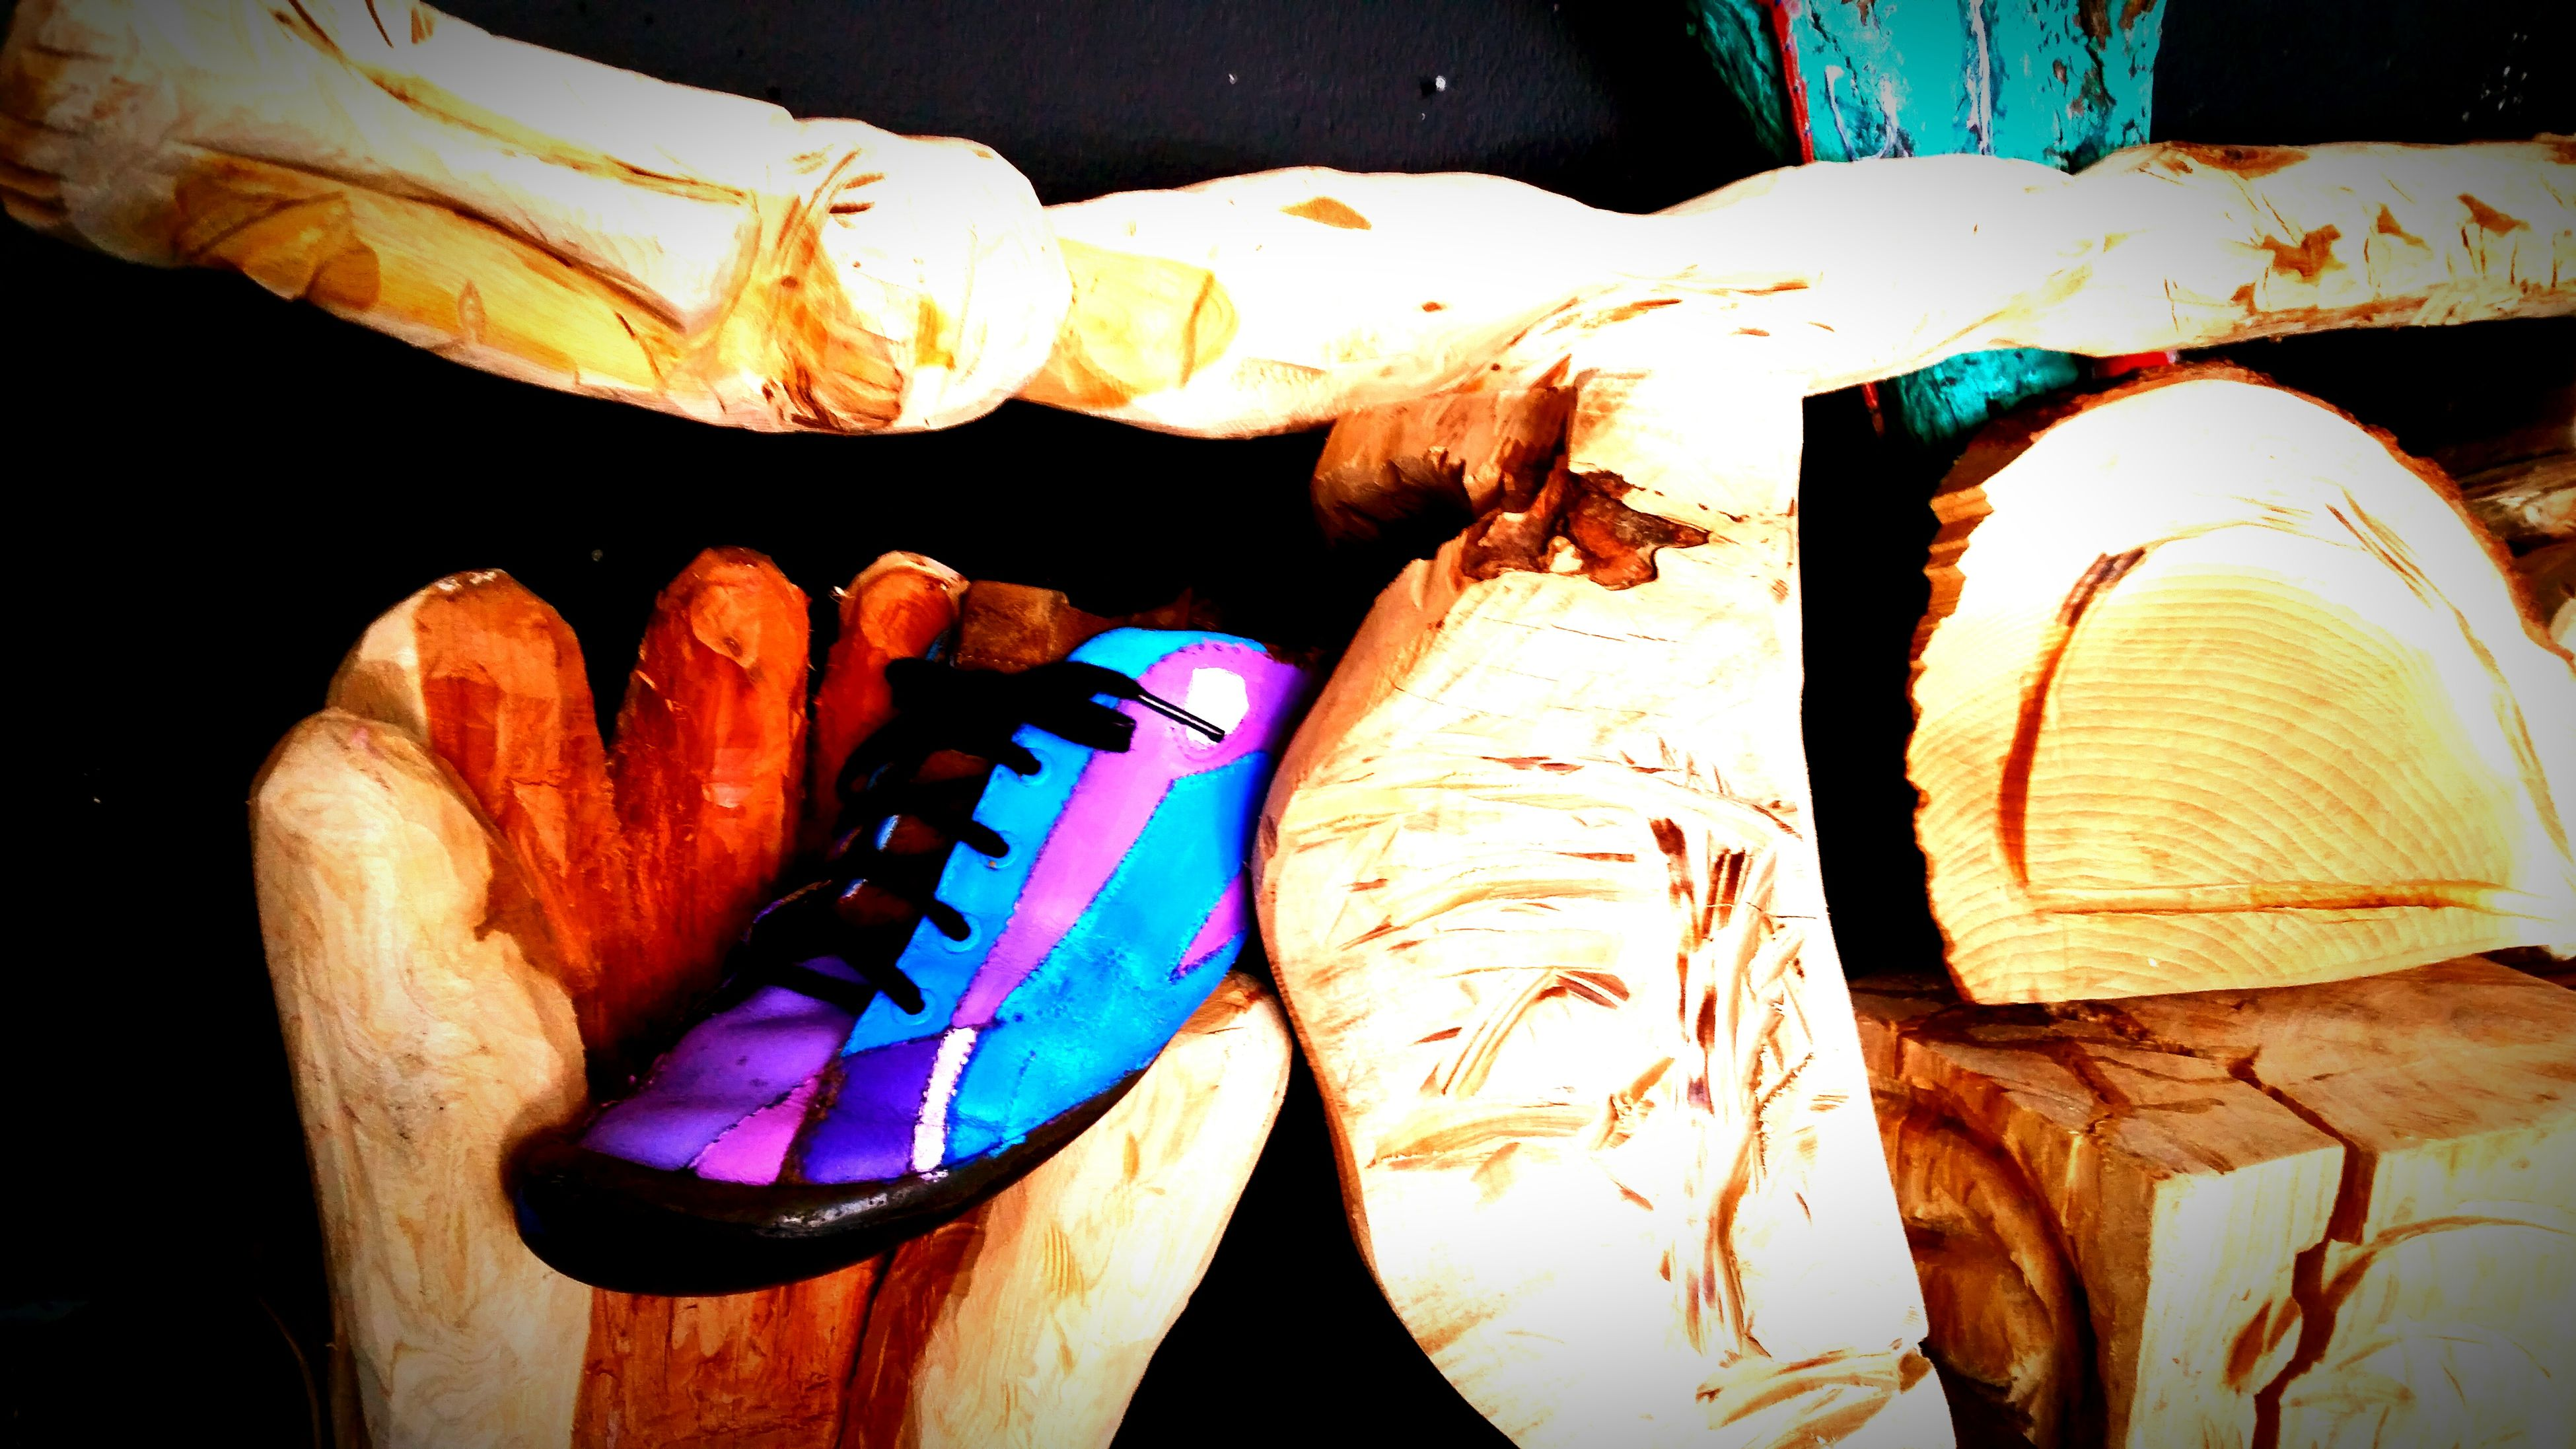 wood - material, still life, close-up, indoors, art and craft, art, creativity, wooden, wood, variation, no people, high angle view, dead animal, paper, brown, blue, rope, table, tied up, multi colored